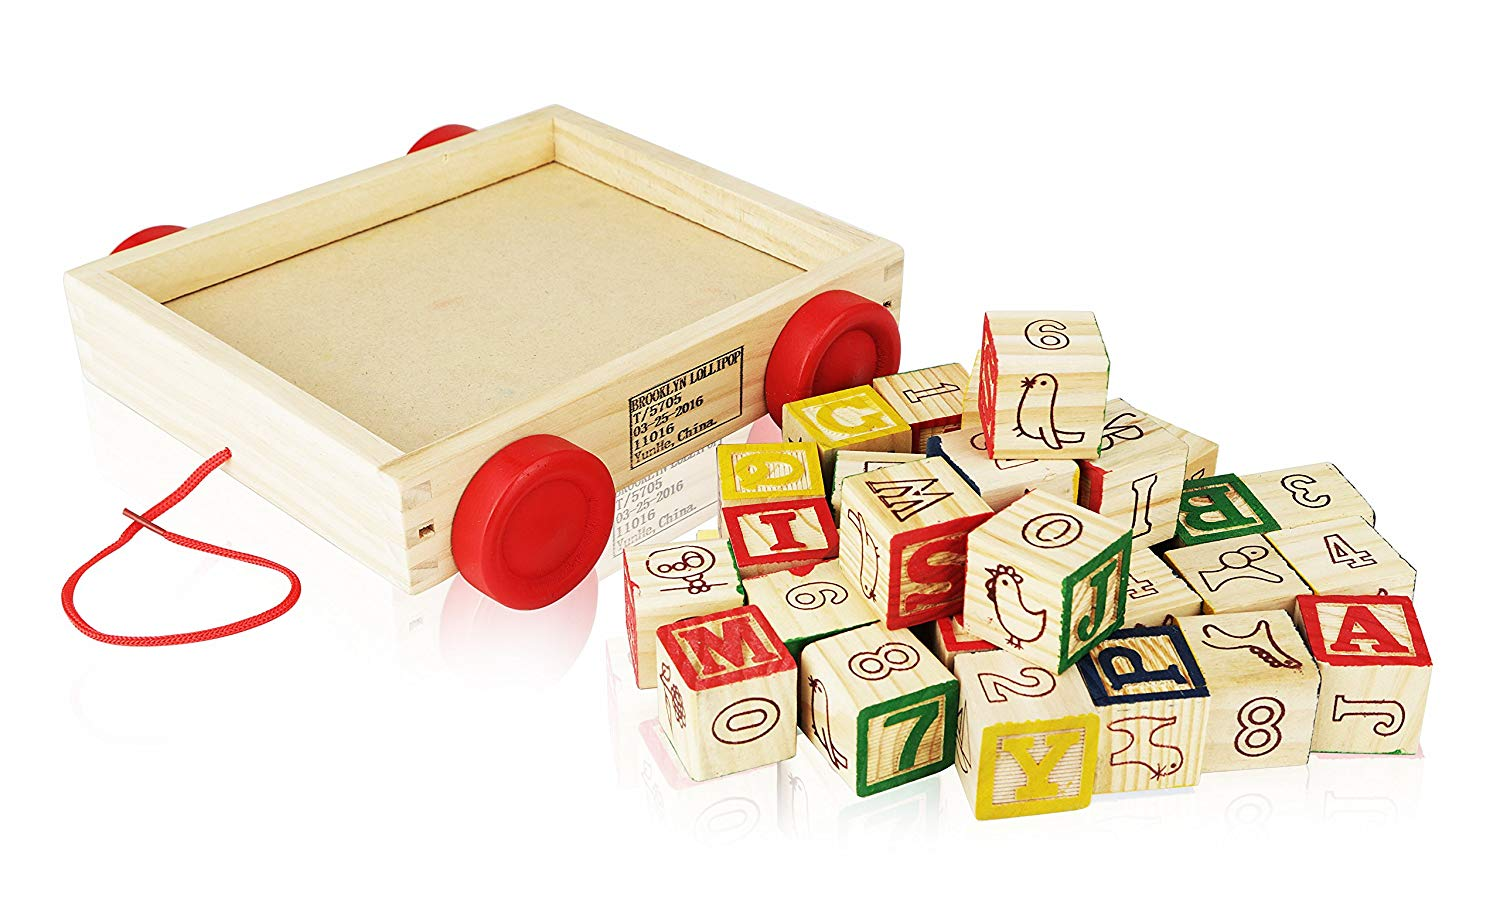 Wooden Toys - Simple and Effective